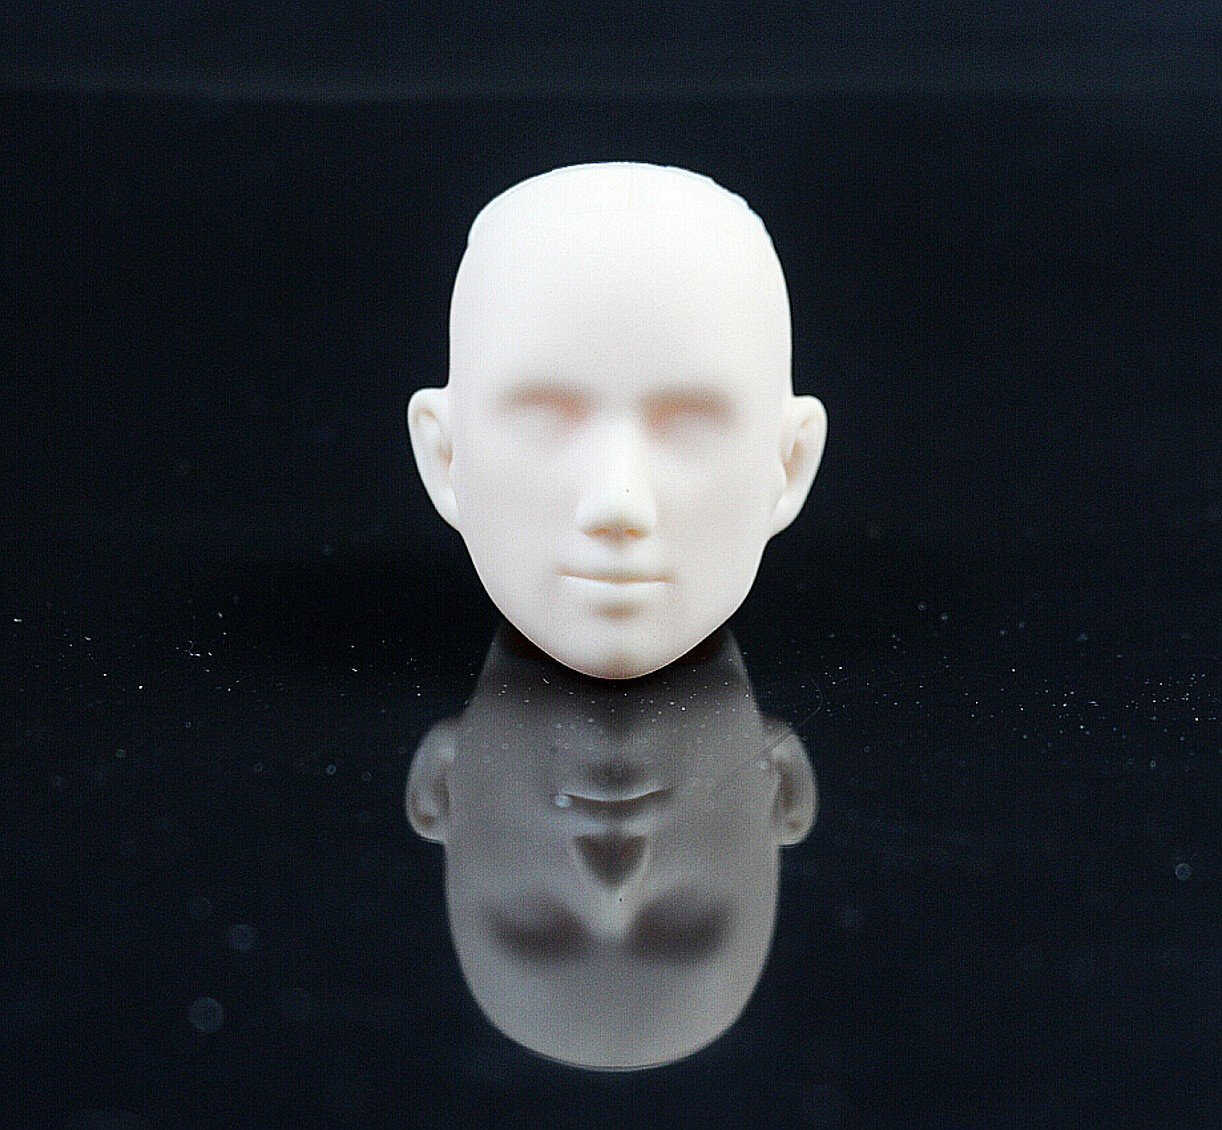 CHENGYIDA 1//6 Scale Obitsu 27cm Male Head 27HD-F02W White skin,Doll Heads for Crafting Repair Practice Makeup